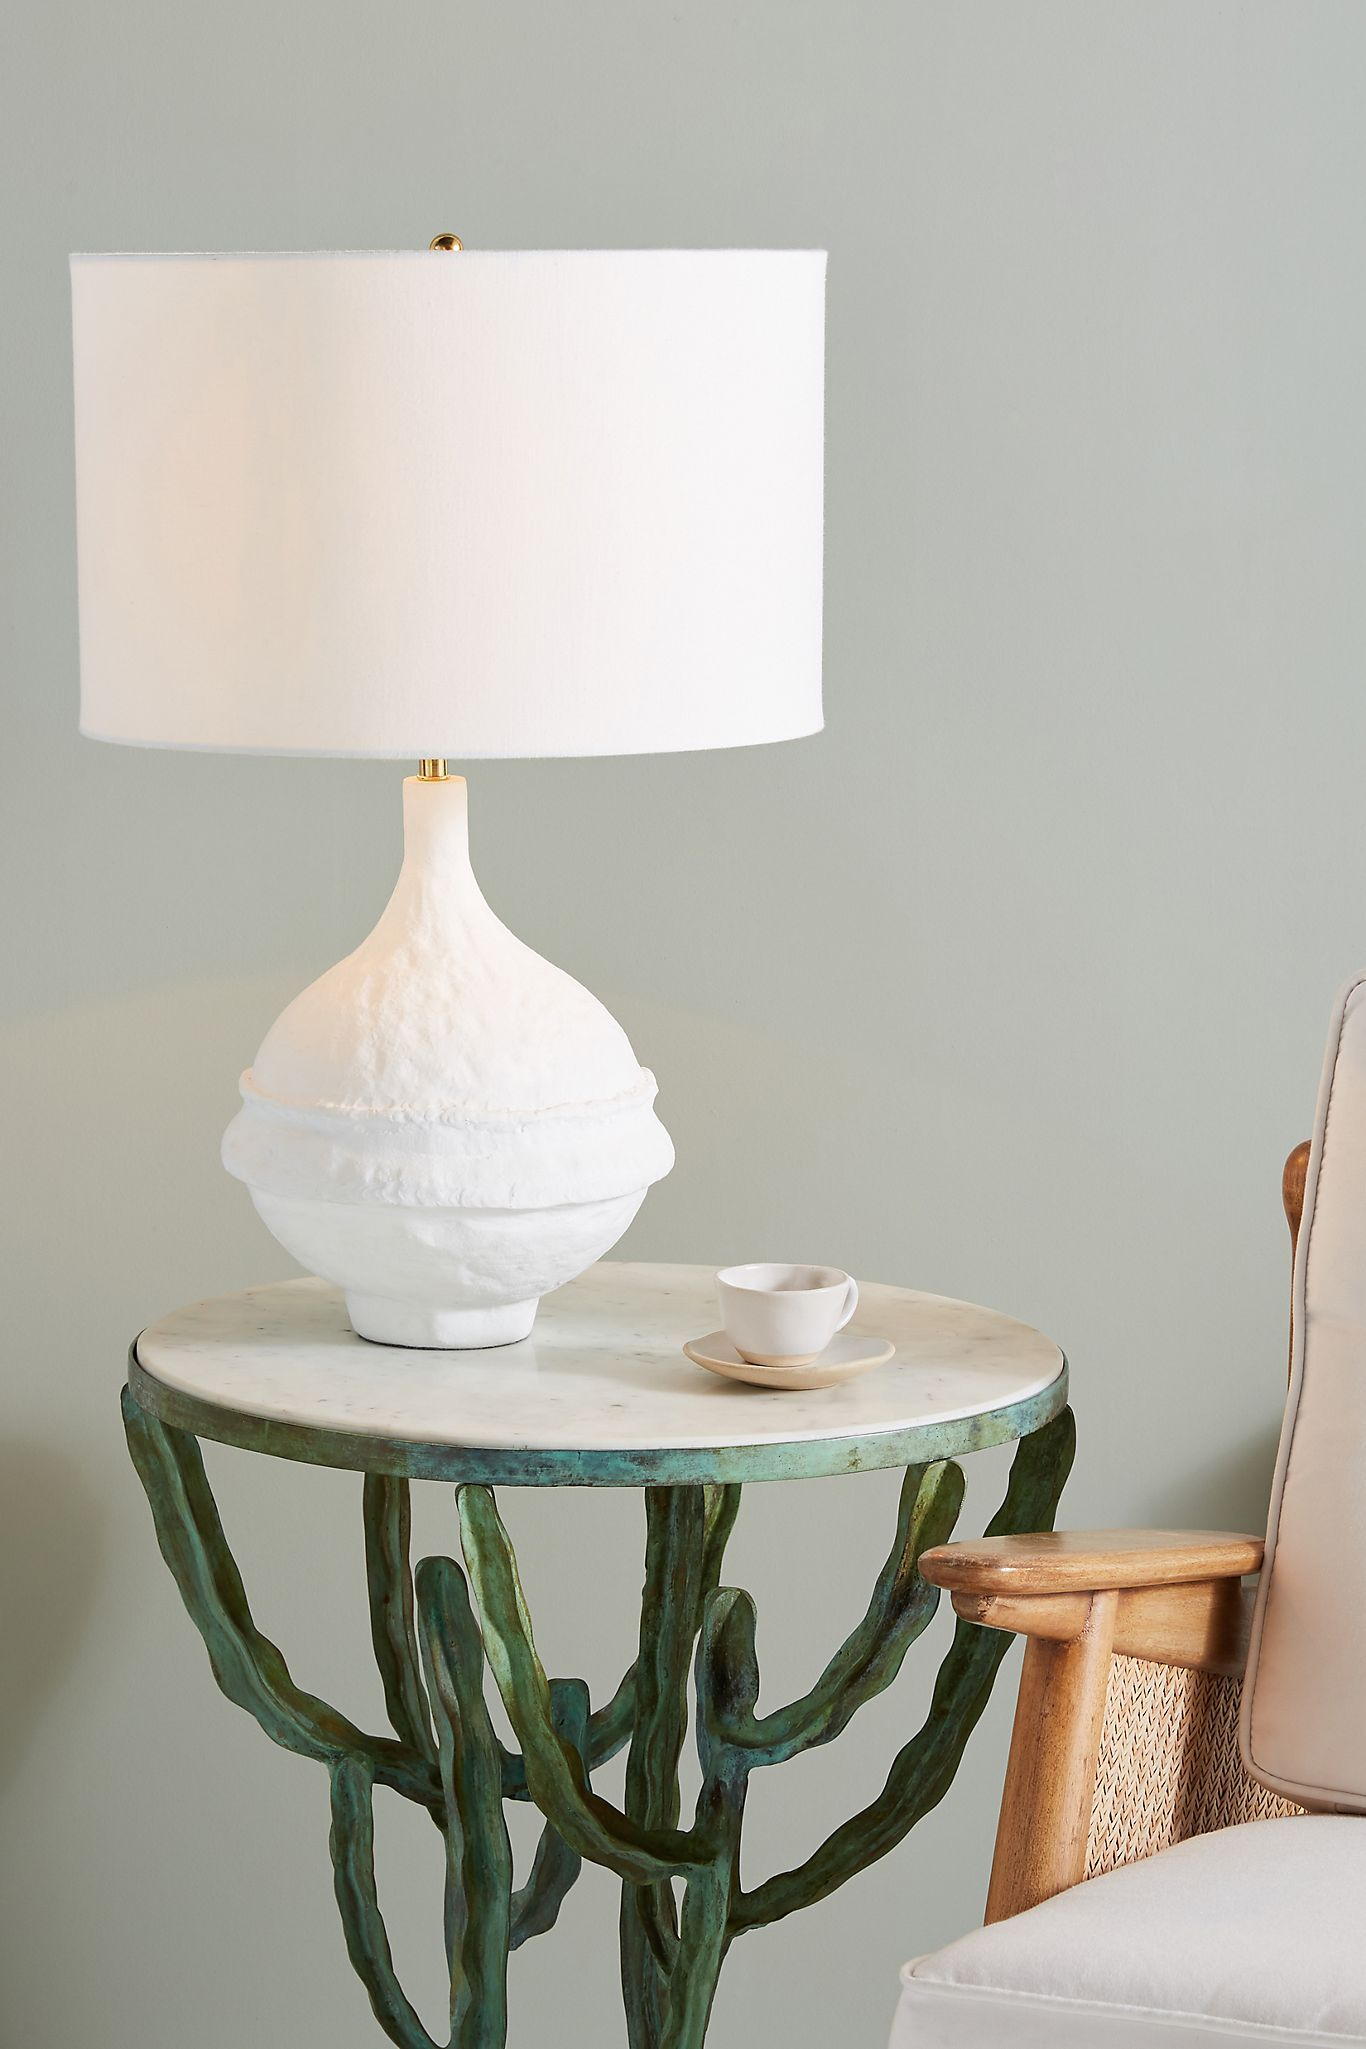 10 Top Unique Table Lamps For Living Room